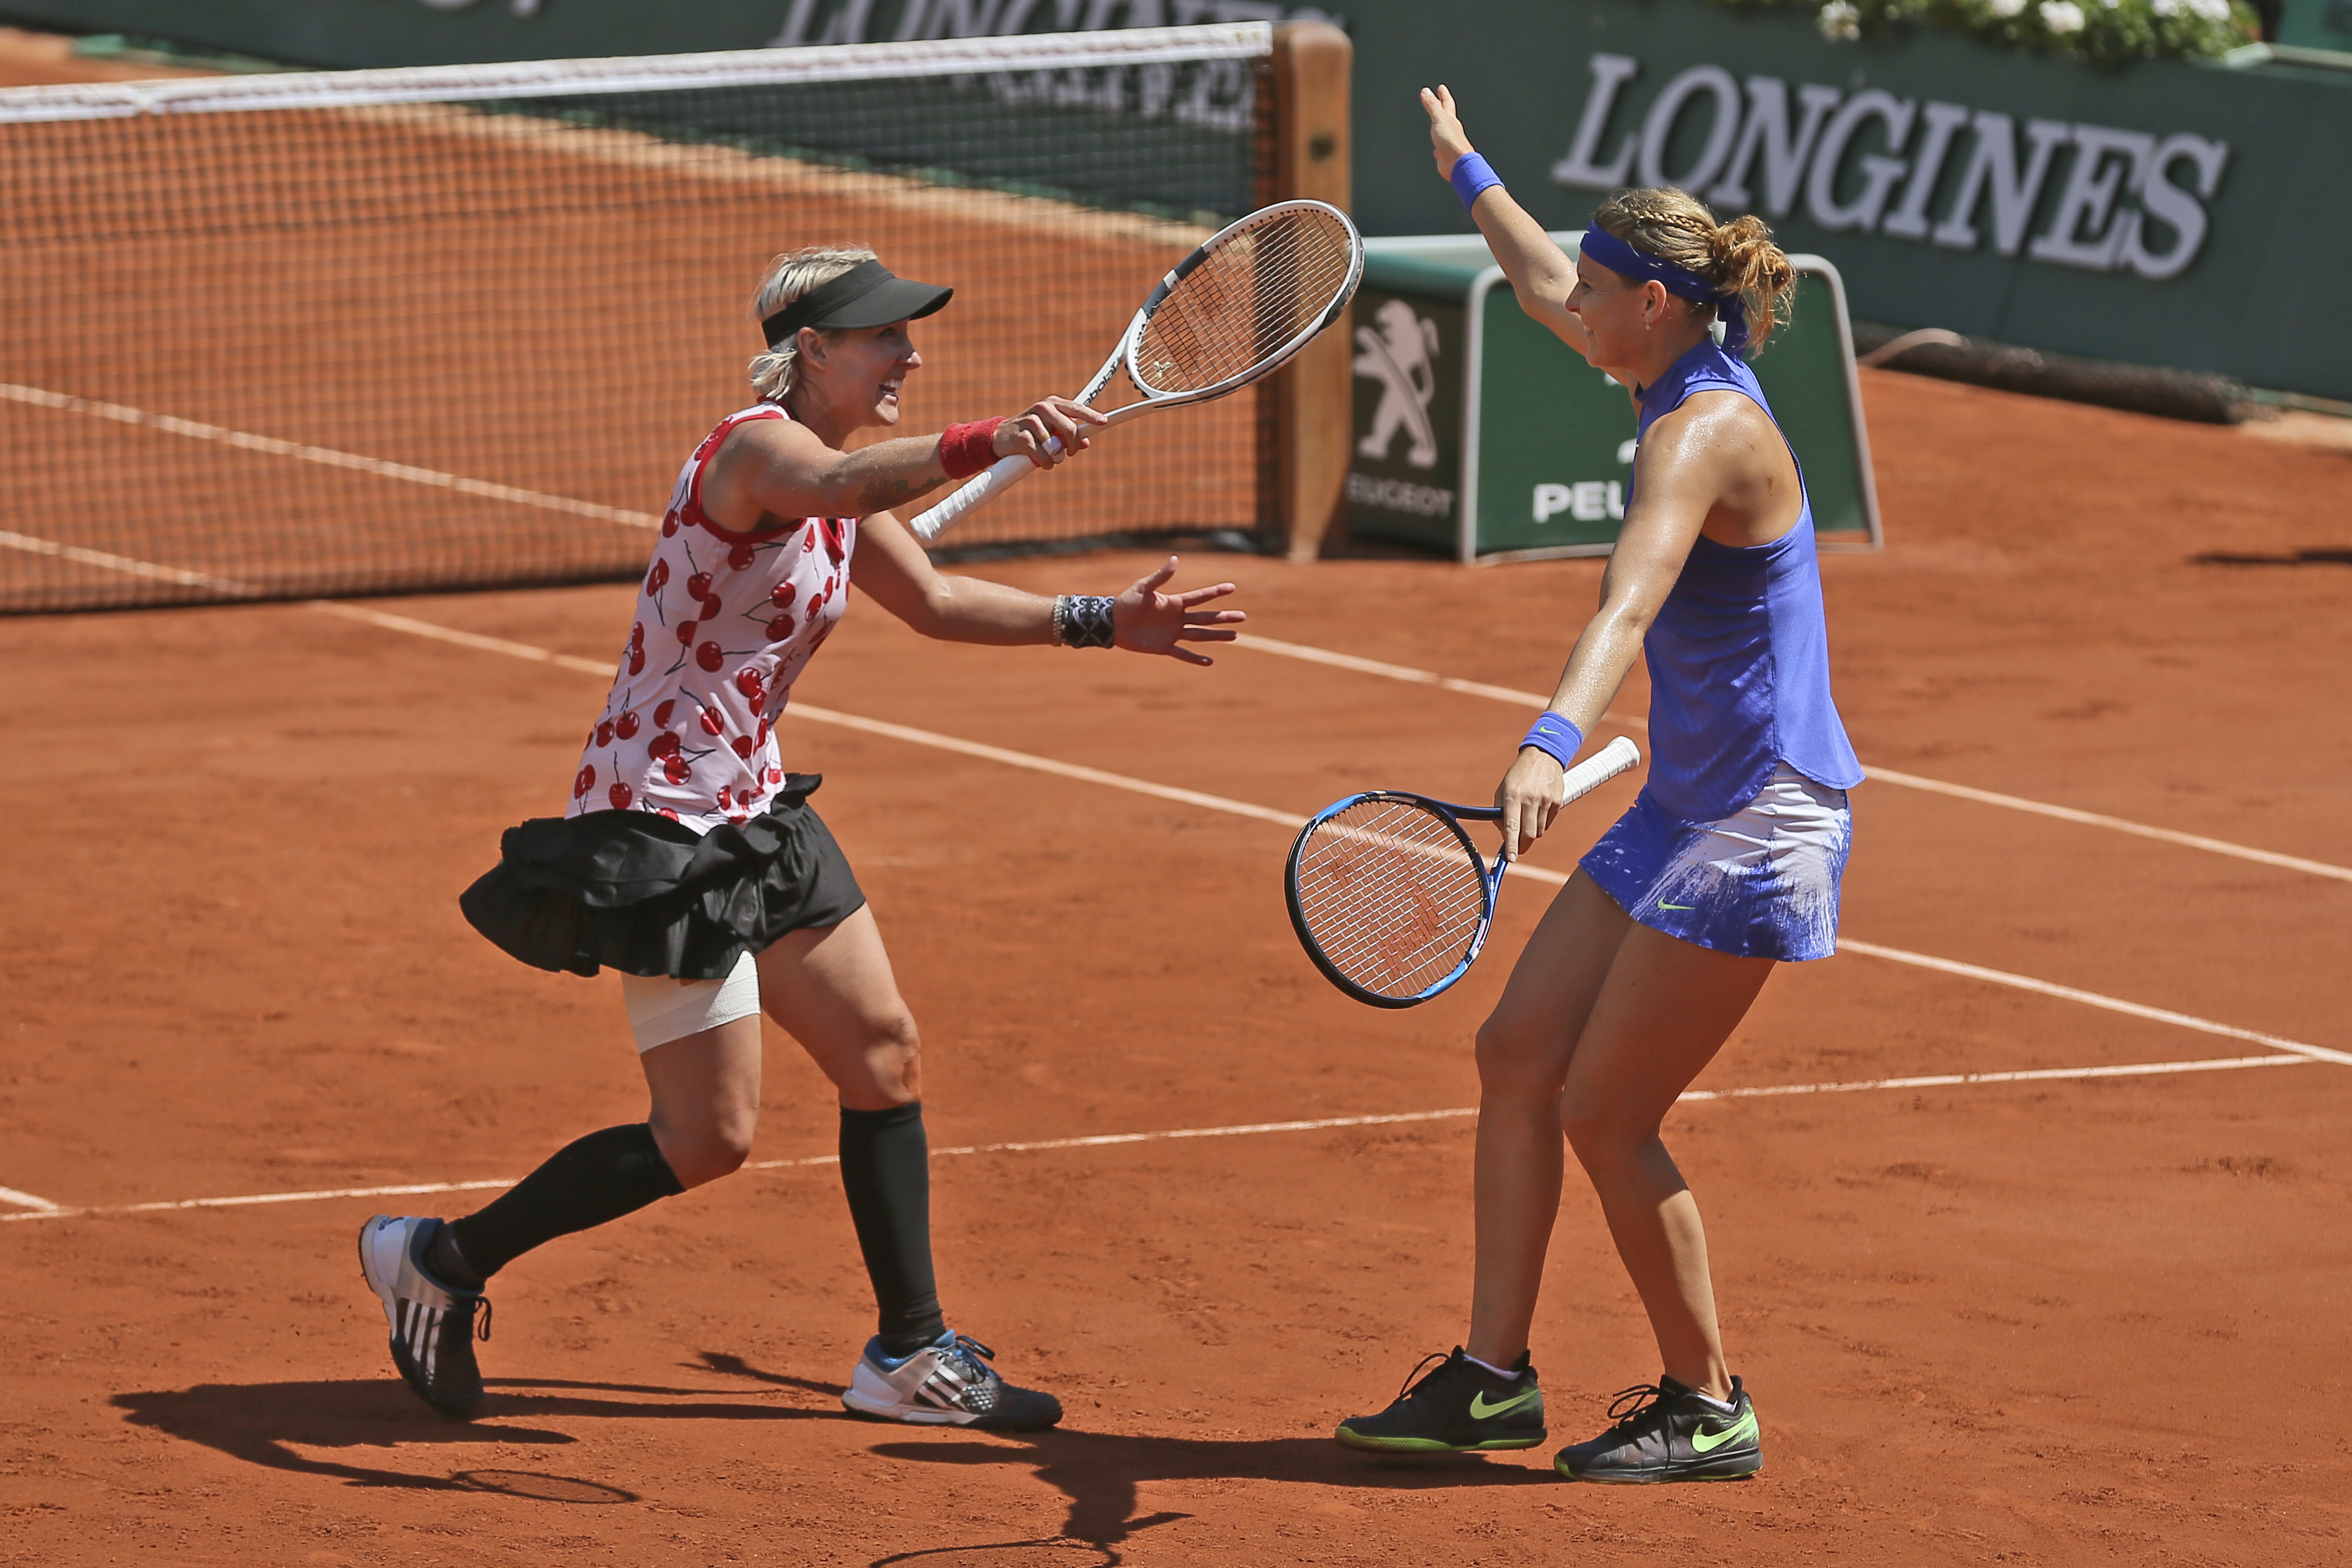 Bethanie Mattek-Sands of the U.S., left, and Lucie Safarova of the Czech Republic celebrate winning women's doubles final match against Australia's Ashleigh Barty and Casey Dellacqua in two sets 6-2, 6-1, at the French Open tennis tournament at the Roland